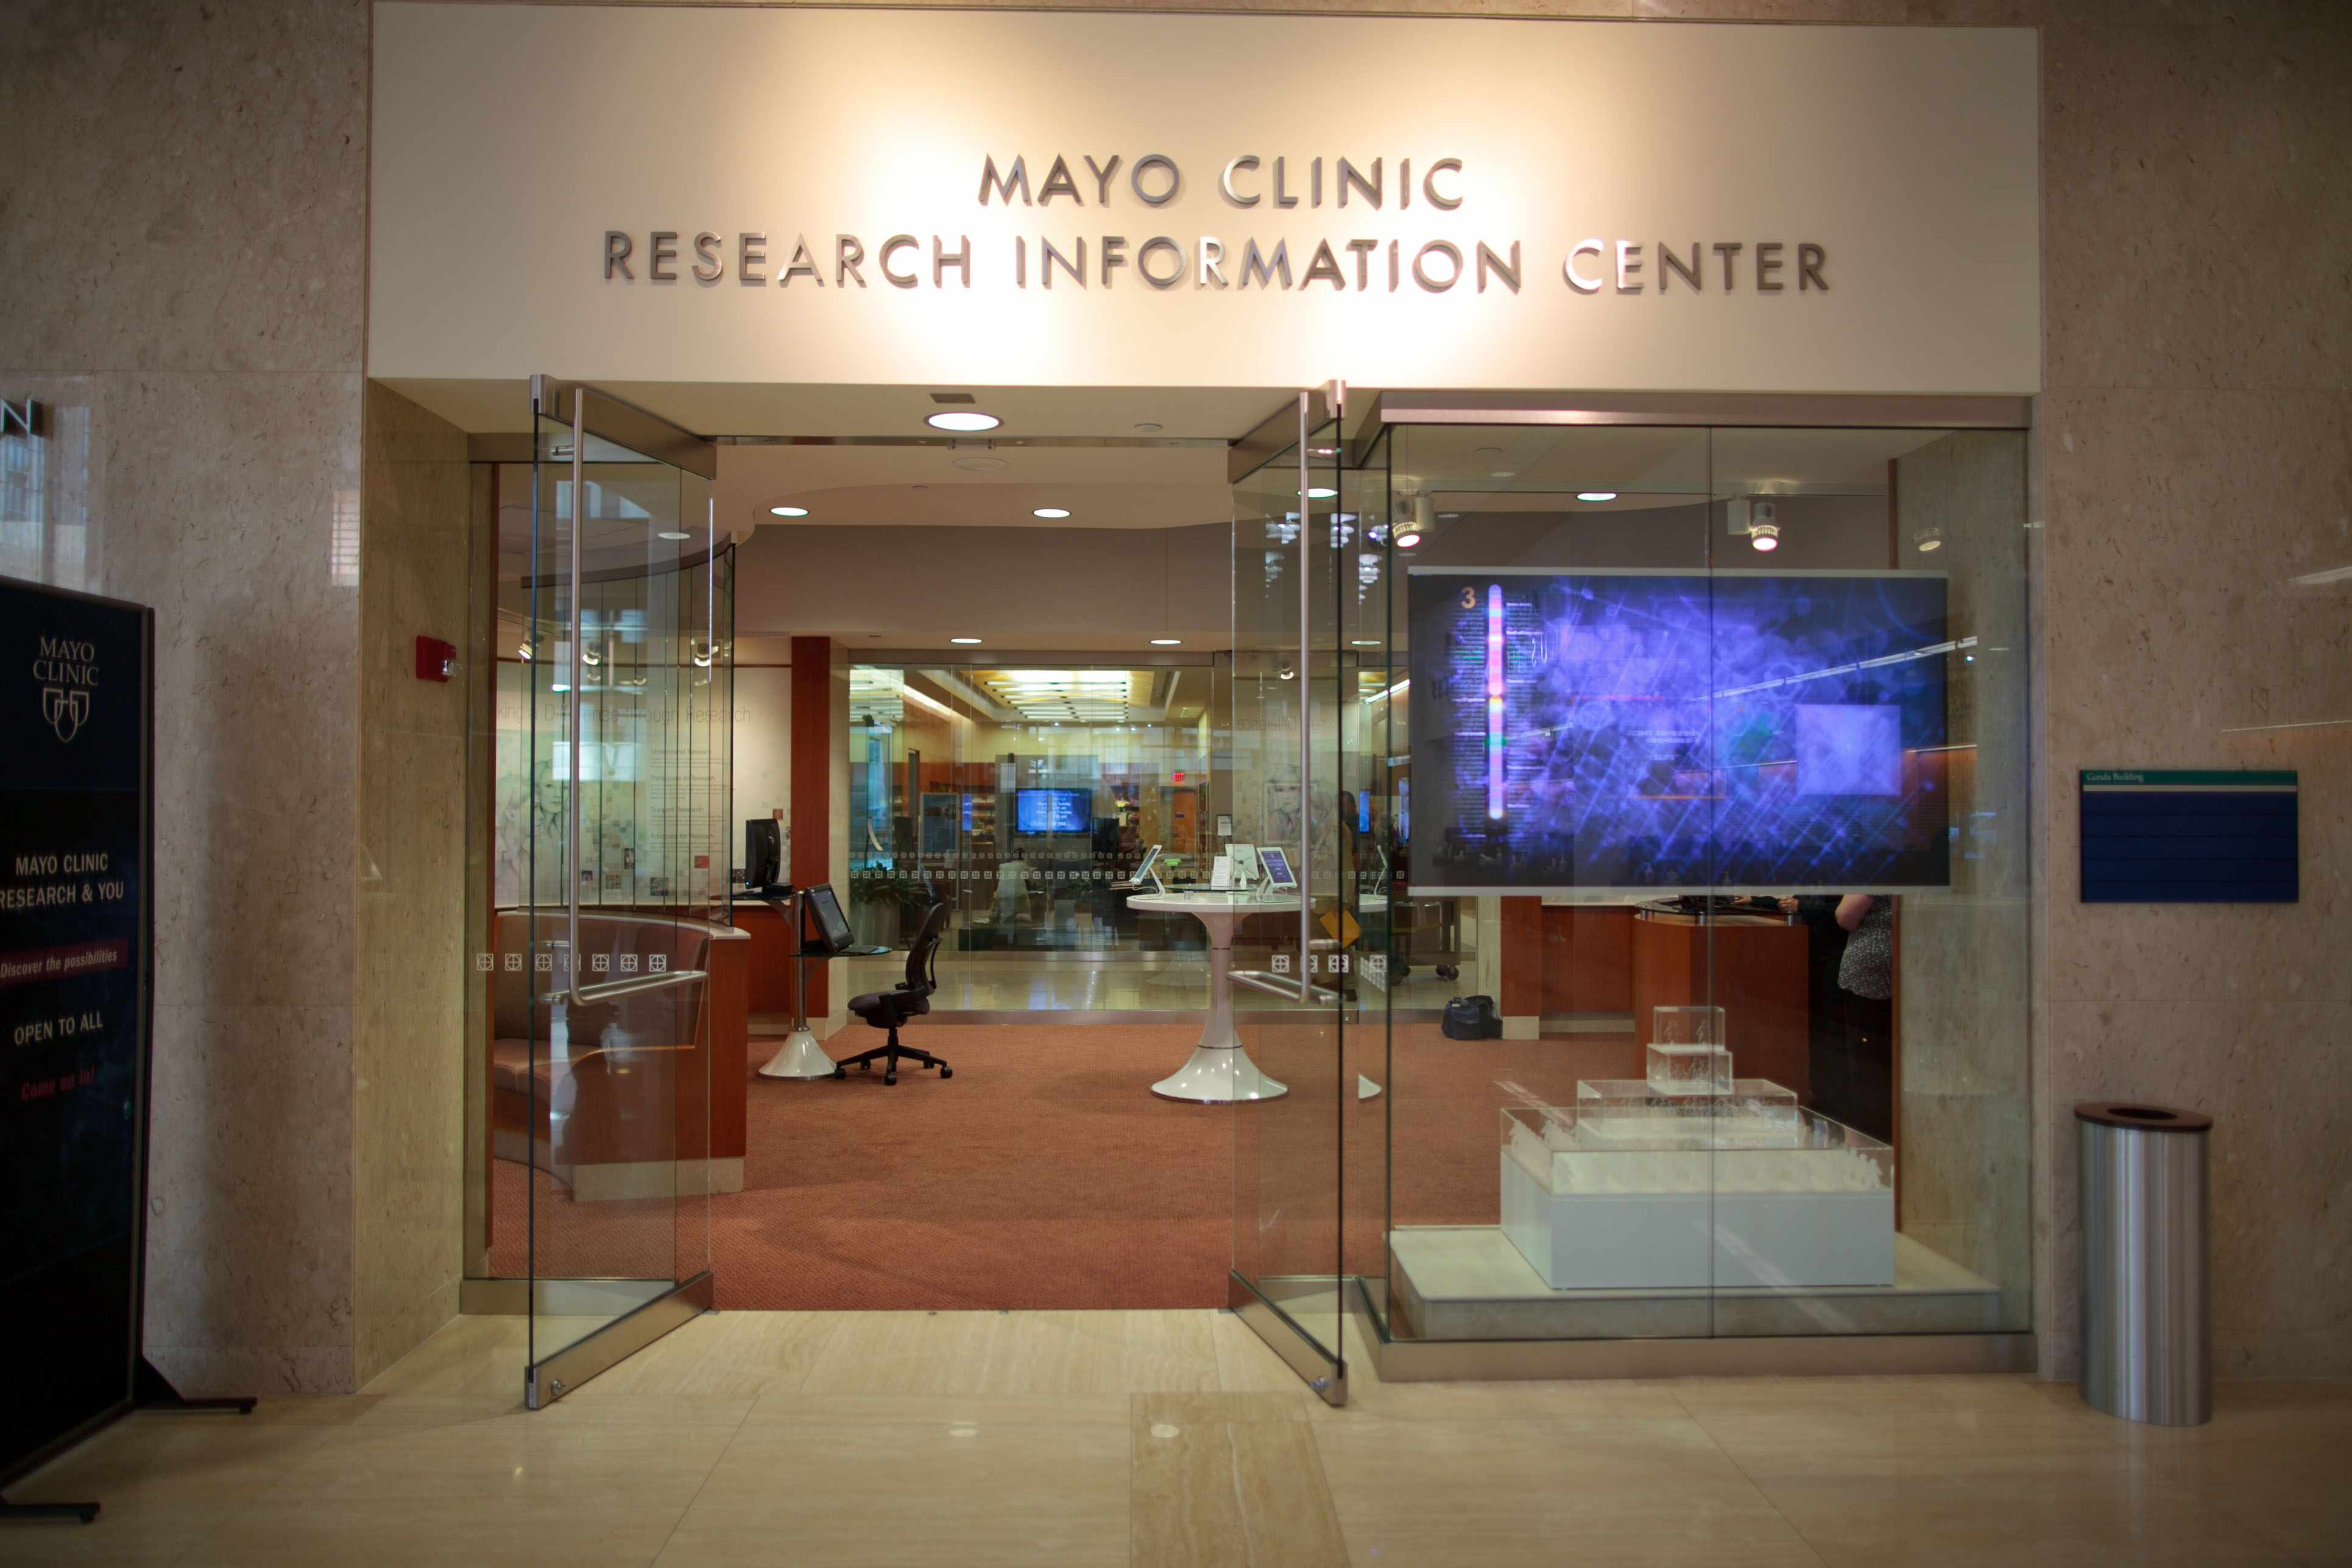 Mayo Clinic Research Center